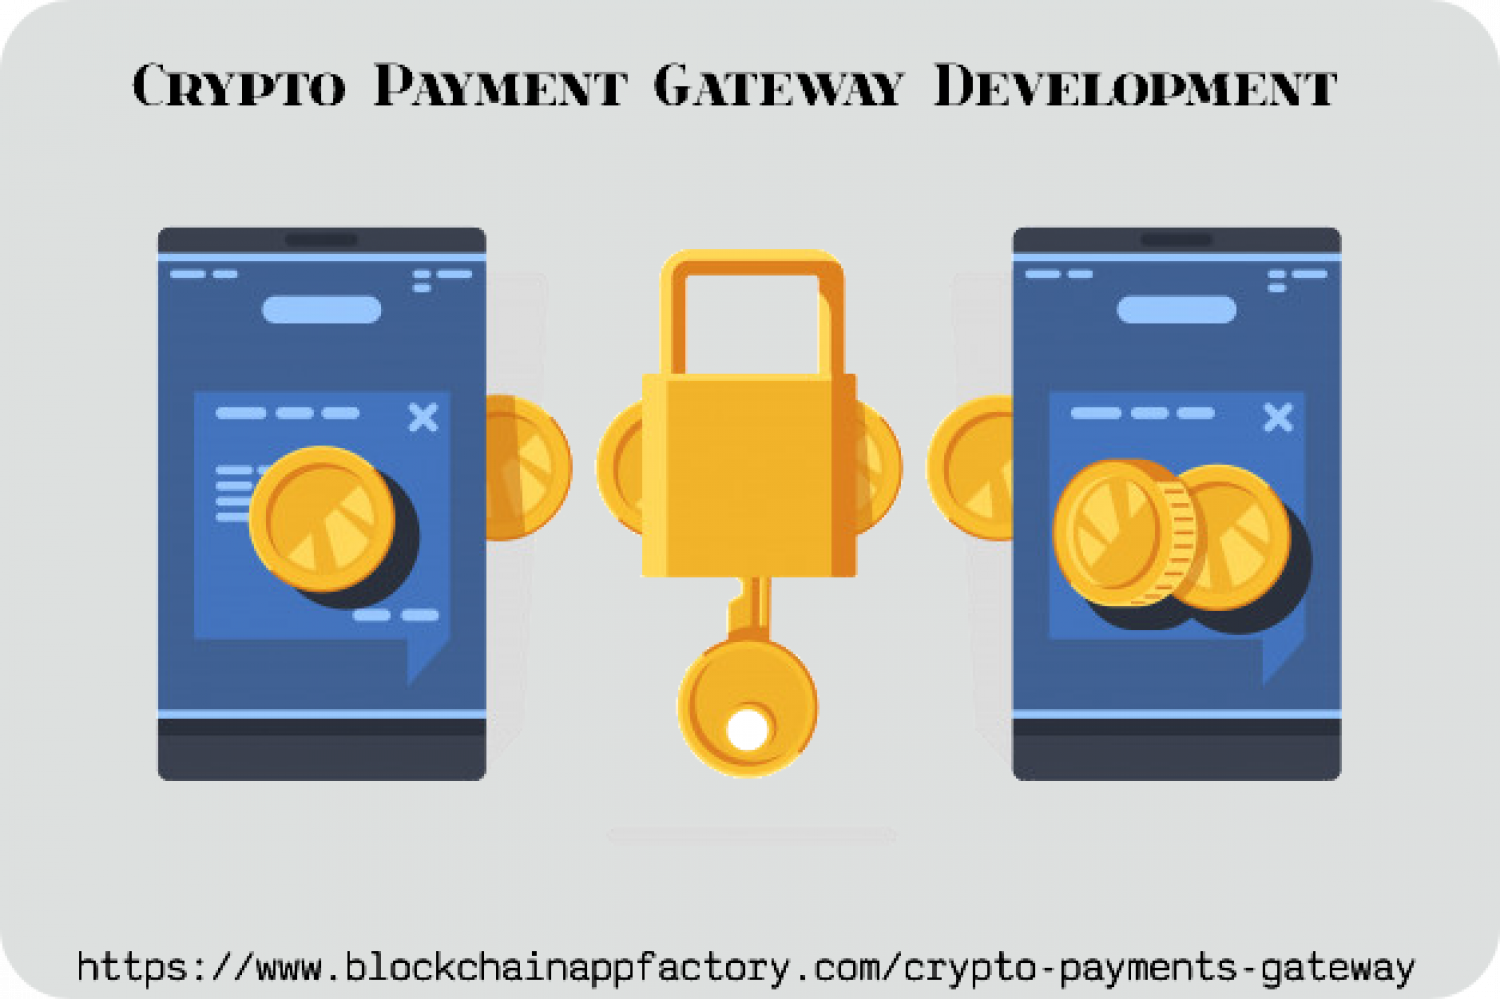 Settle transactions quickly through Crypto Payment Gateway Development Infographic